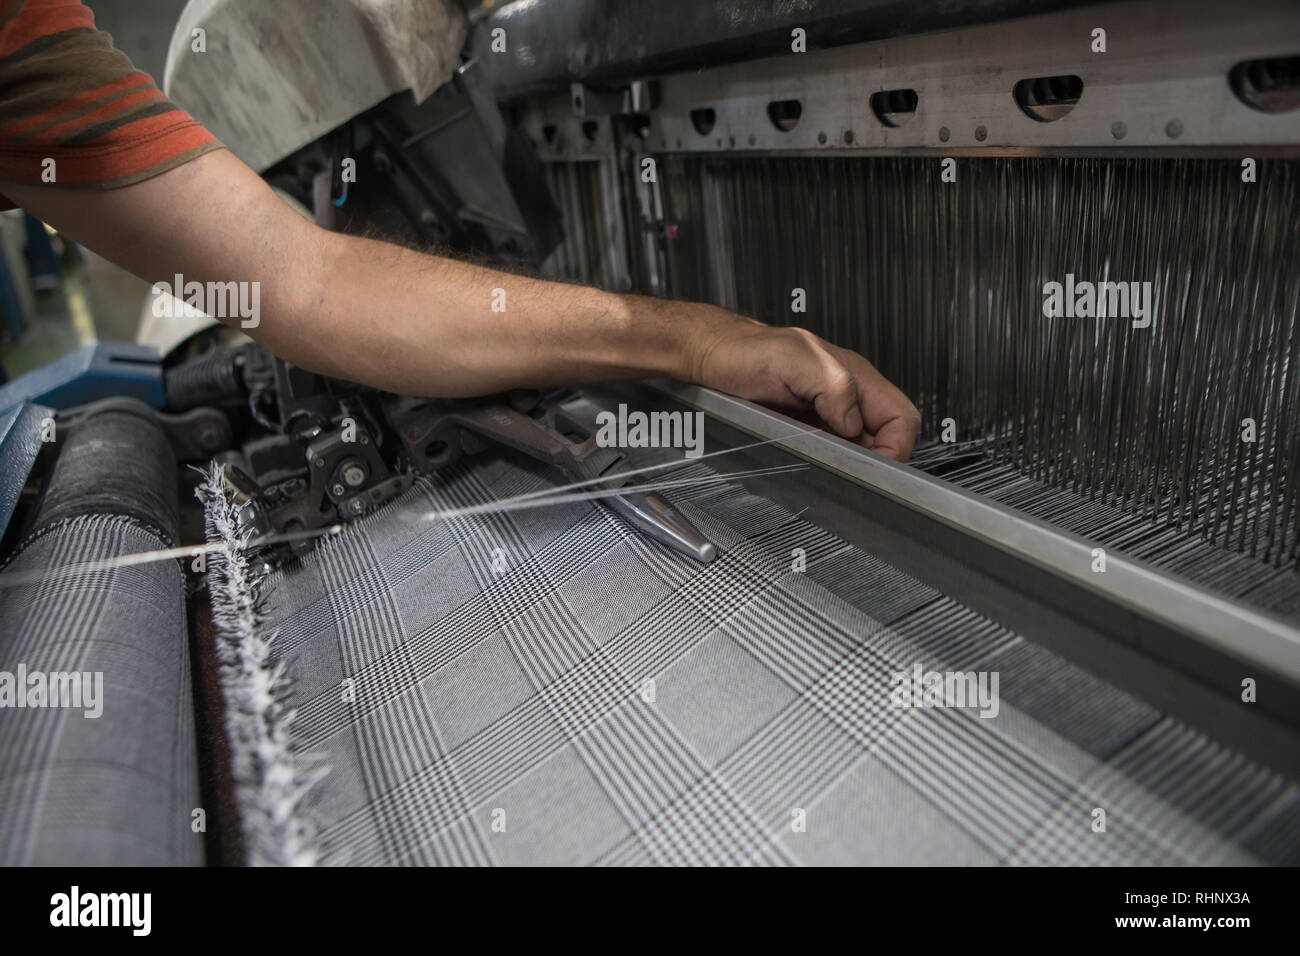 Hand on weaving loom machine. A loom machine for clothing or woven label. Weaving machine for garment industry. Weaving loom in textile factory. Stock Photo